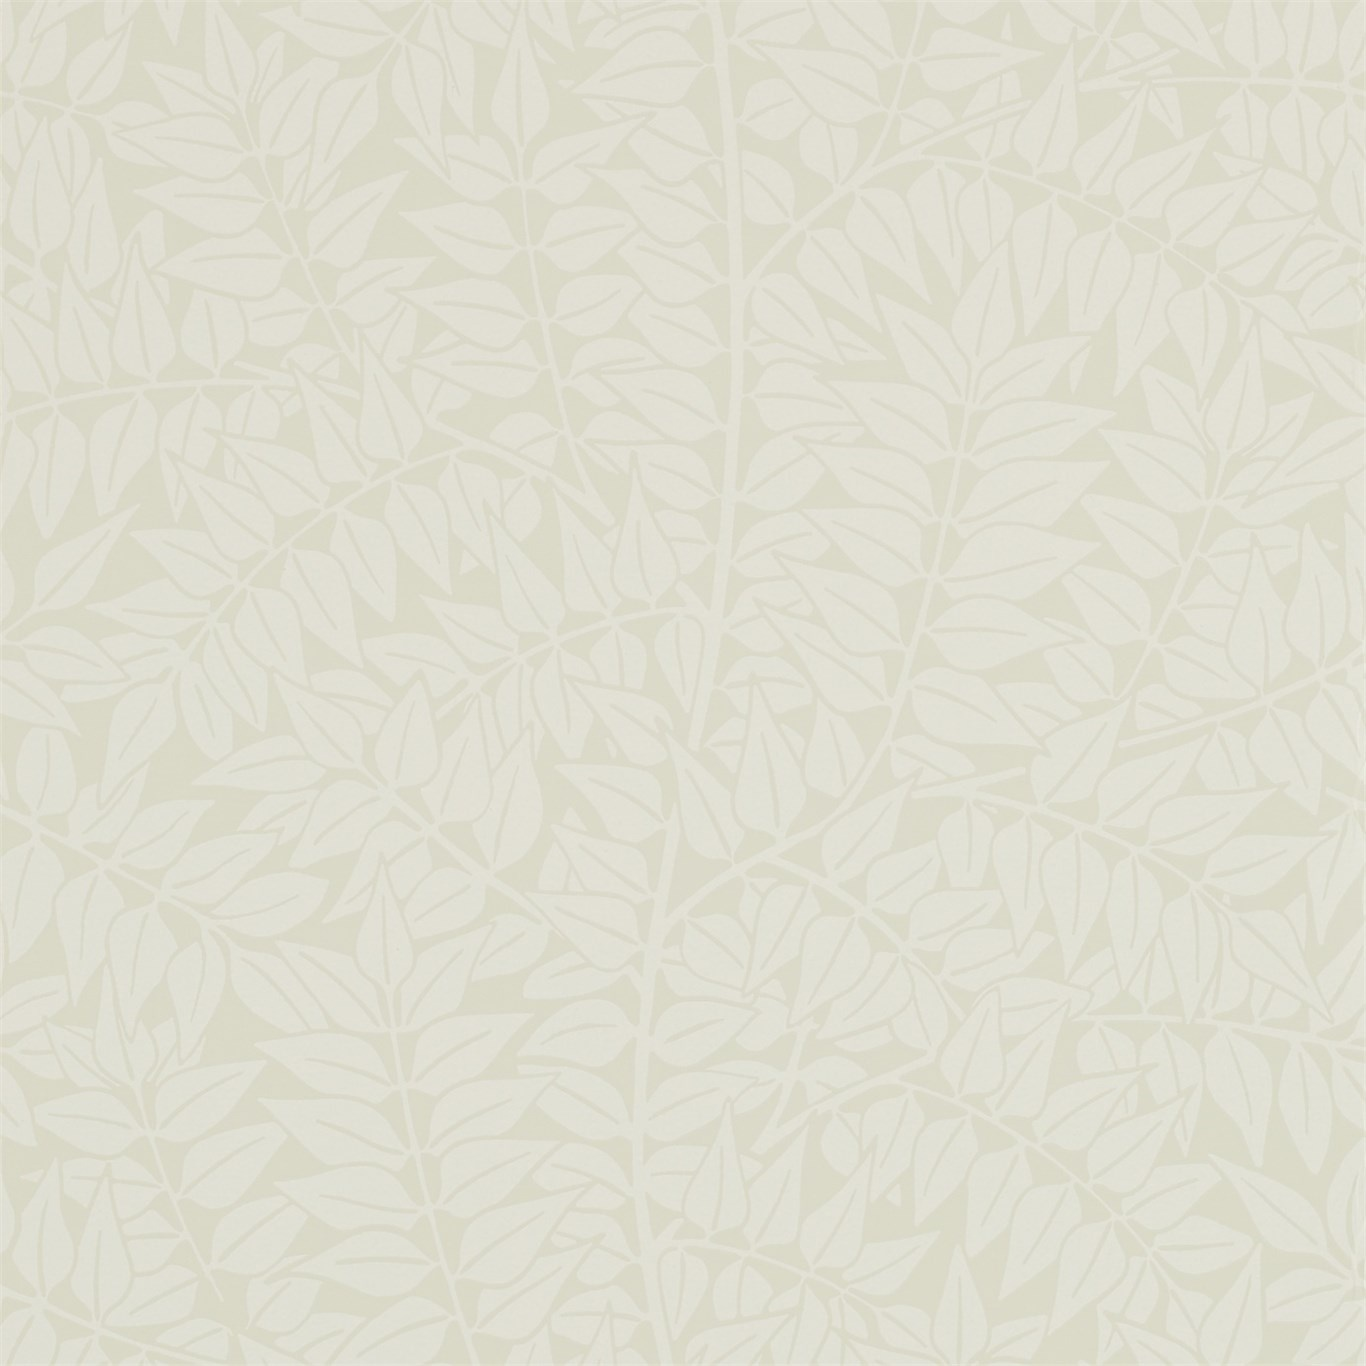 Image of Morris & Co Branch Vellum Wallpaper 210379